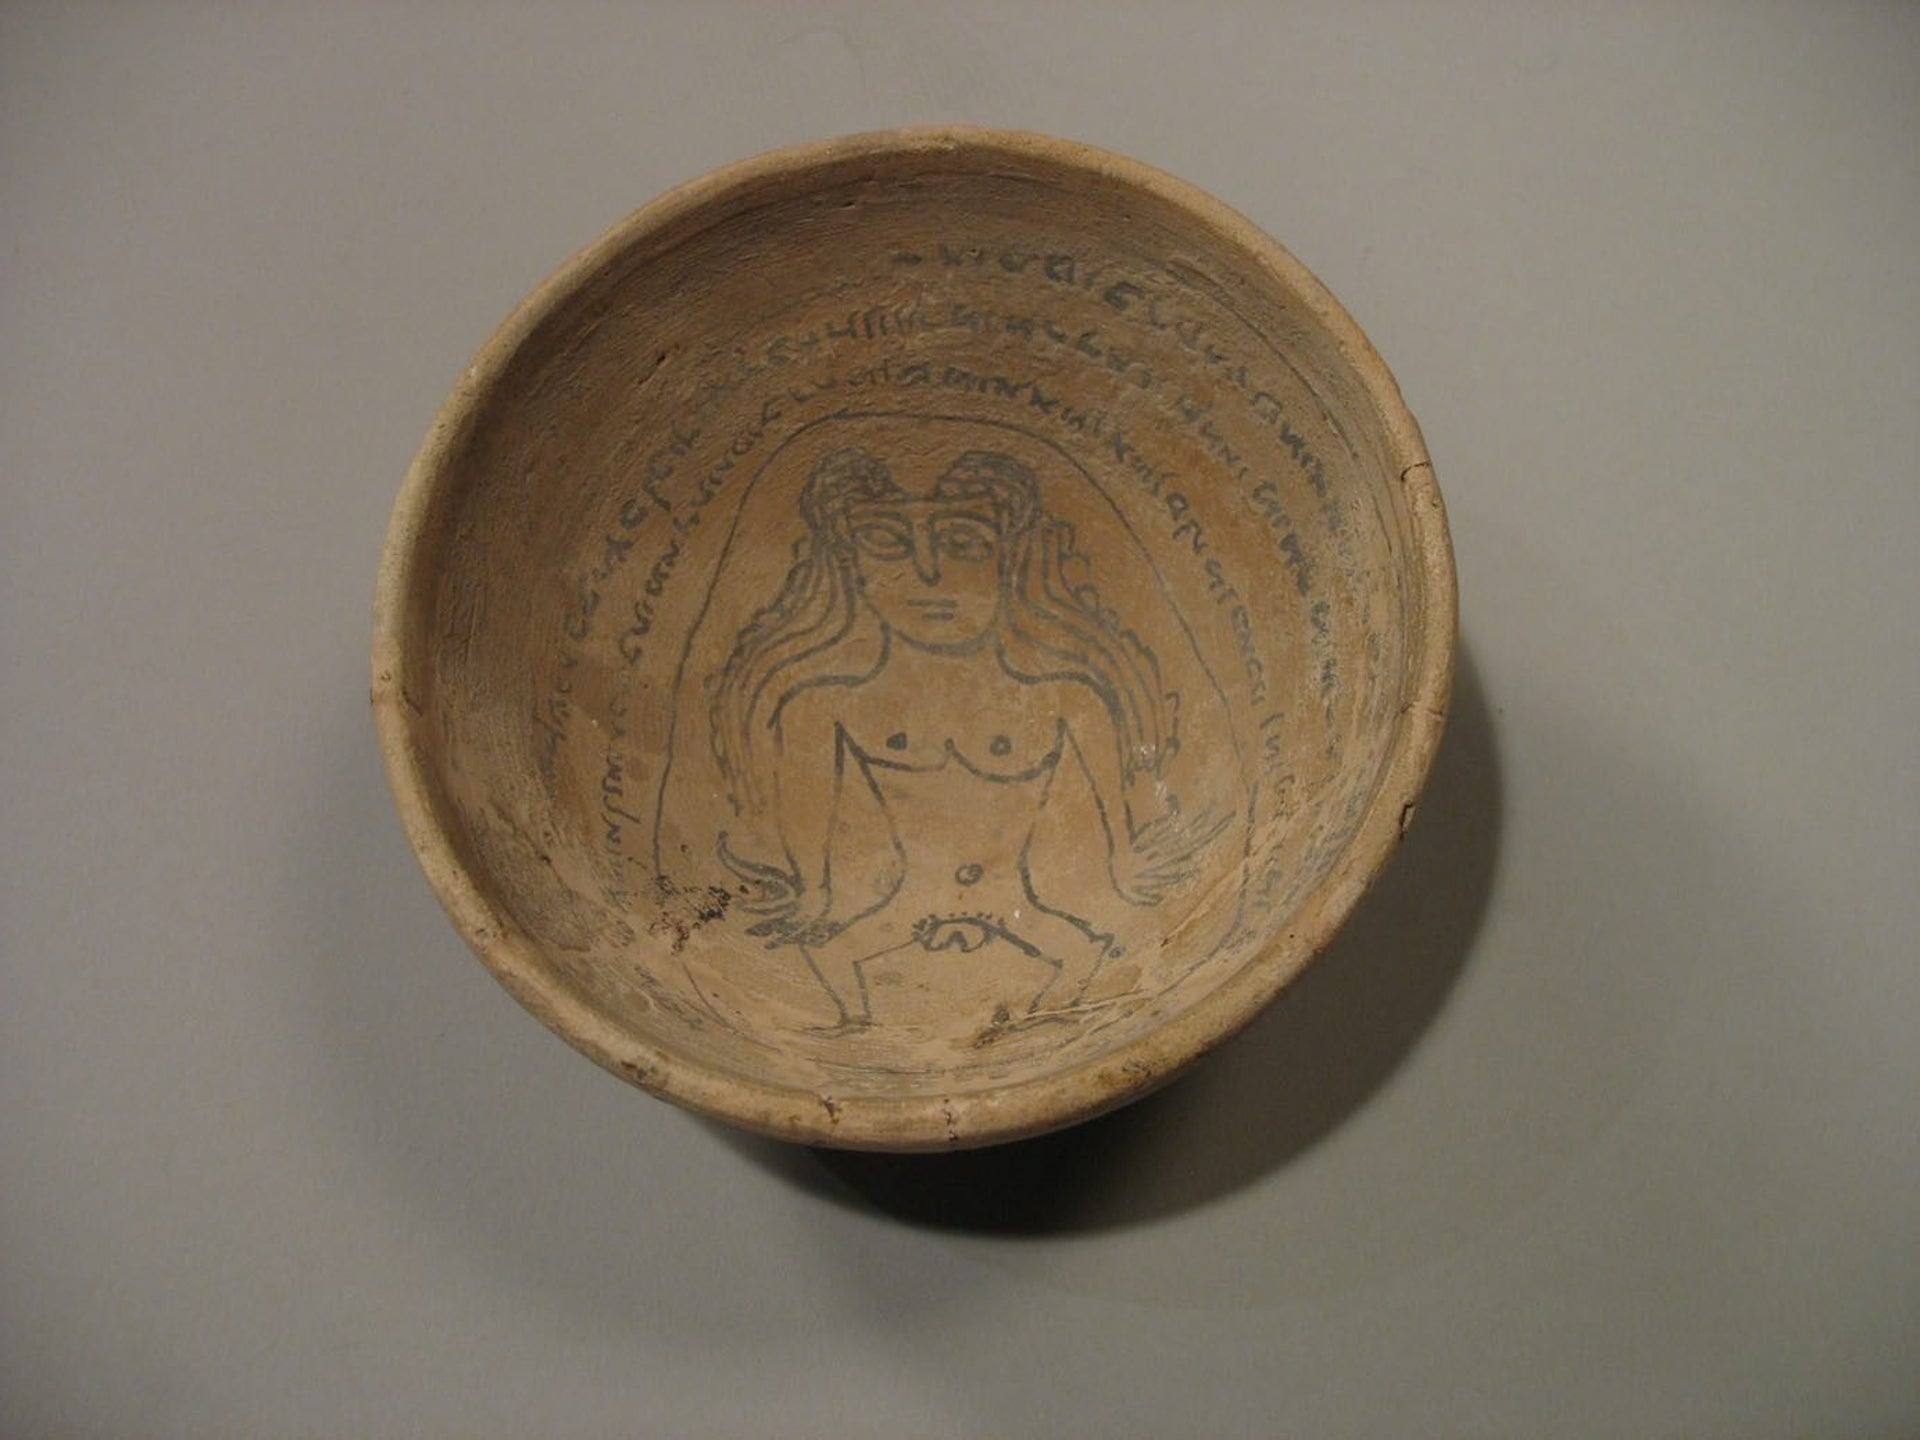 Illustration of Lilith on an earthenware vesse.